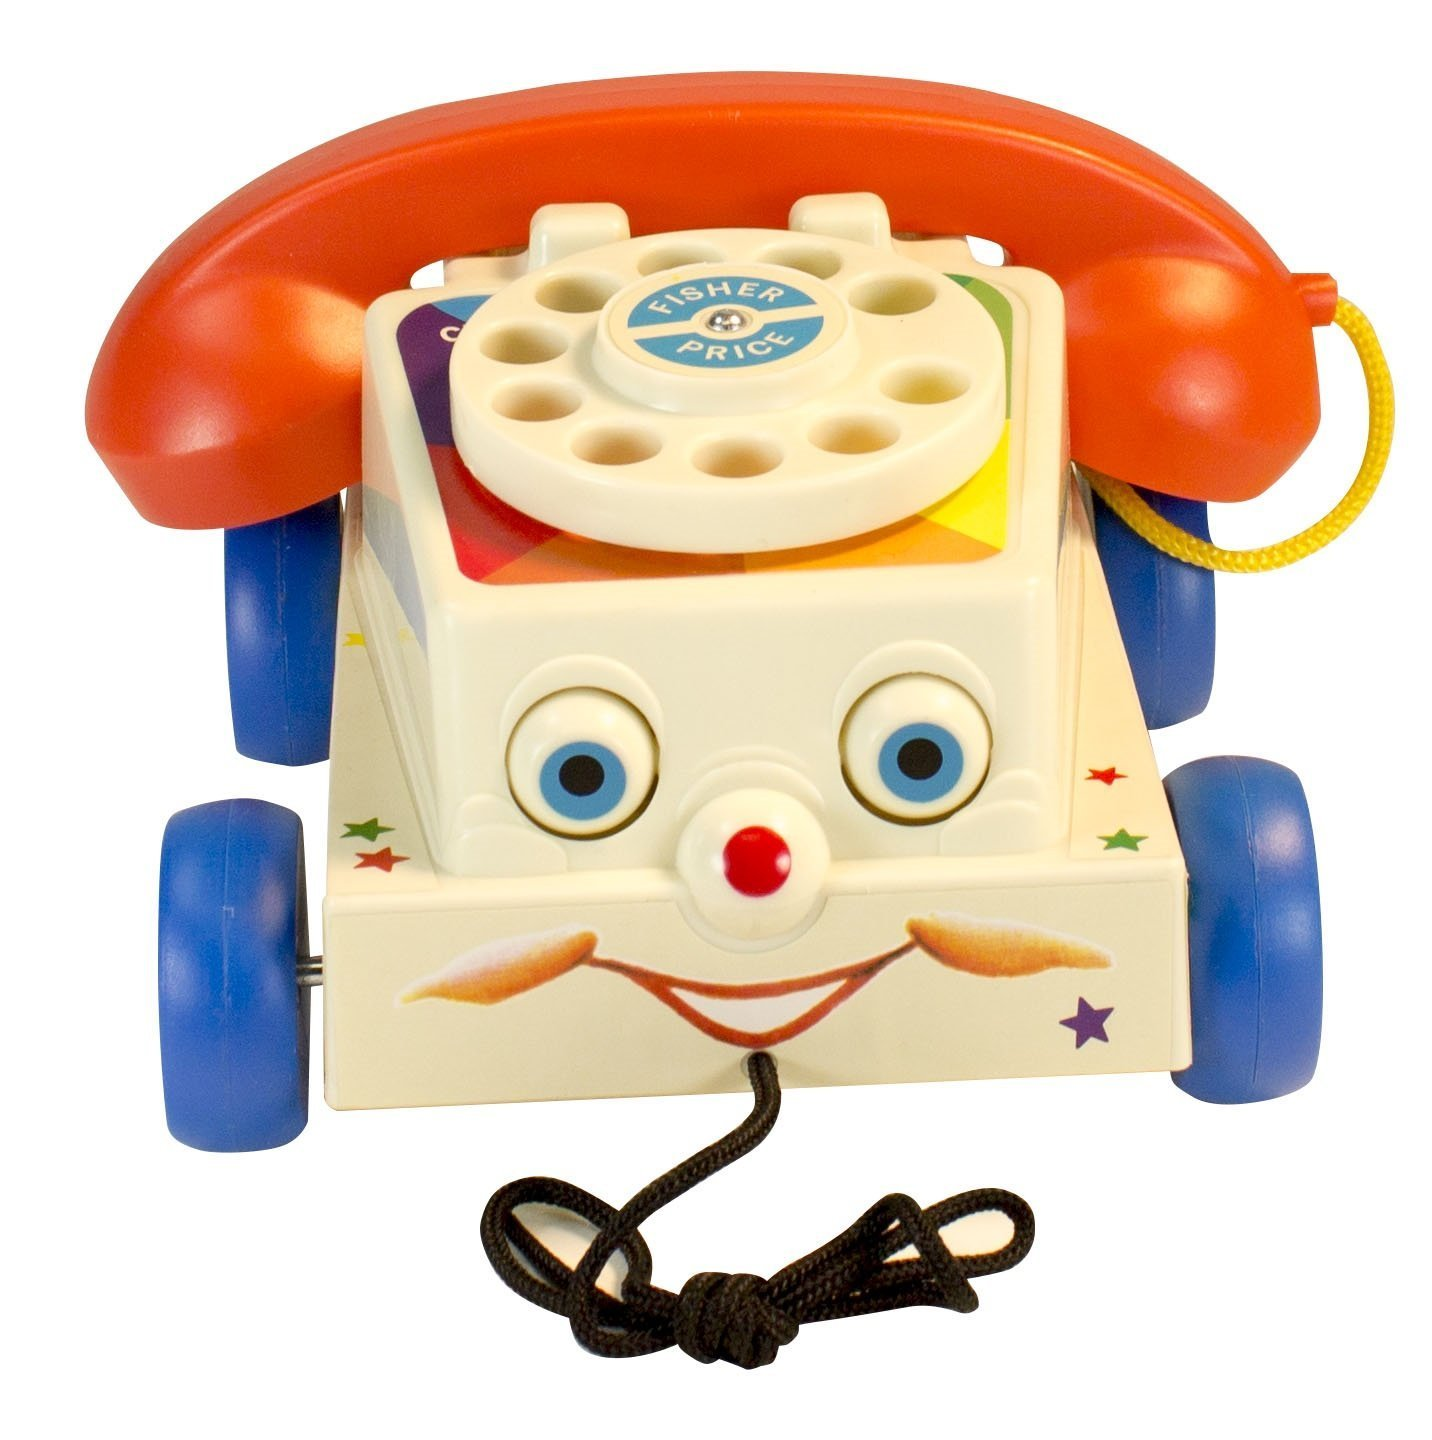 Classic Fisher Price Toys : Fisher price classic chatter phone best educational